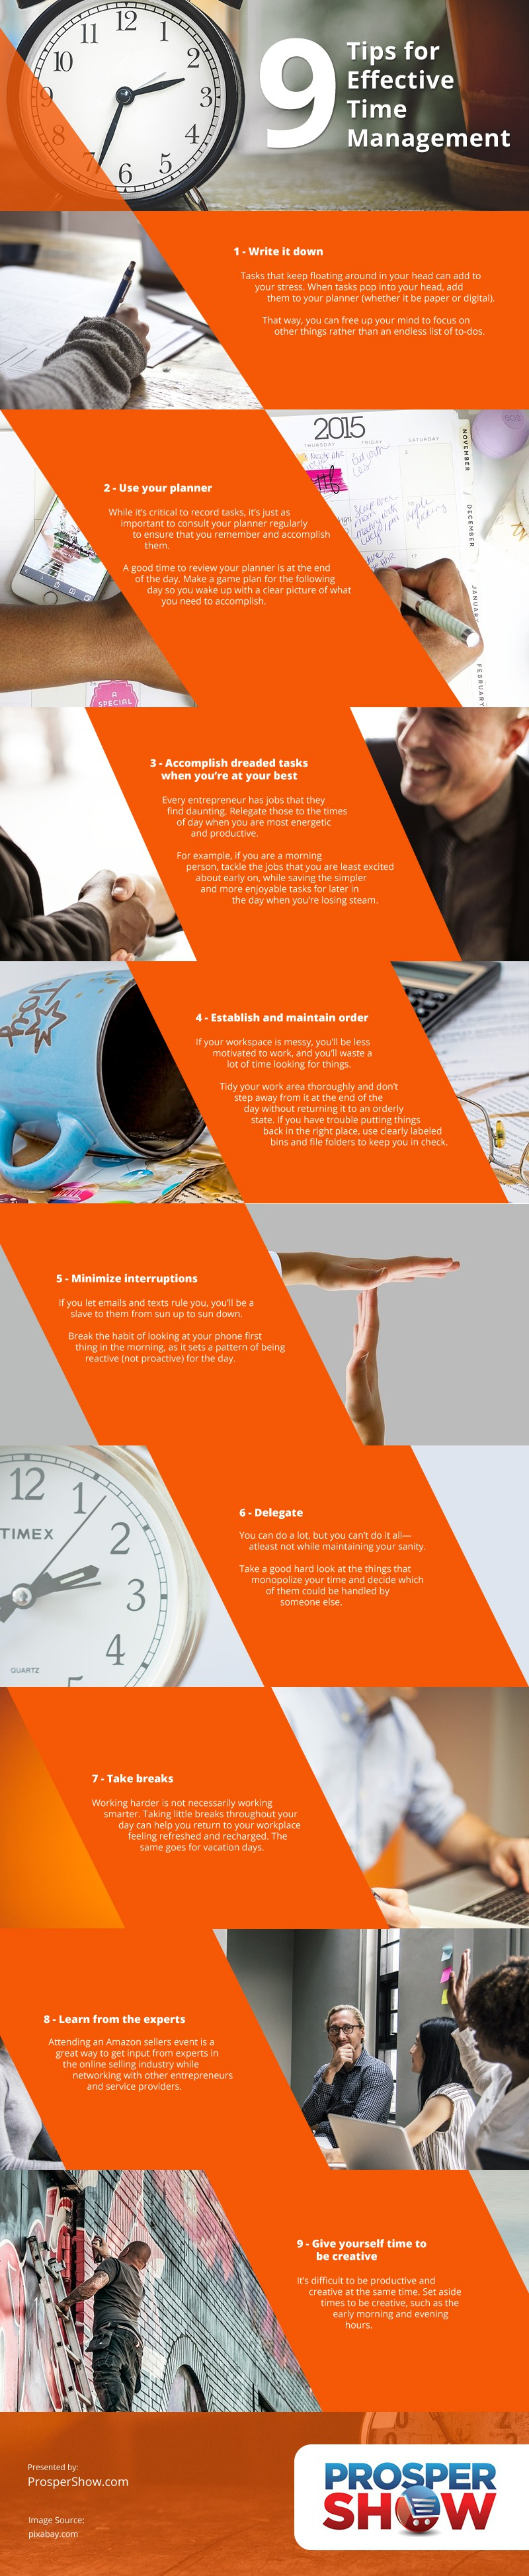 9 Tips for Effective Time Management Infographic